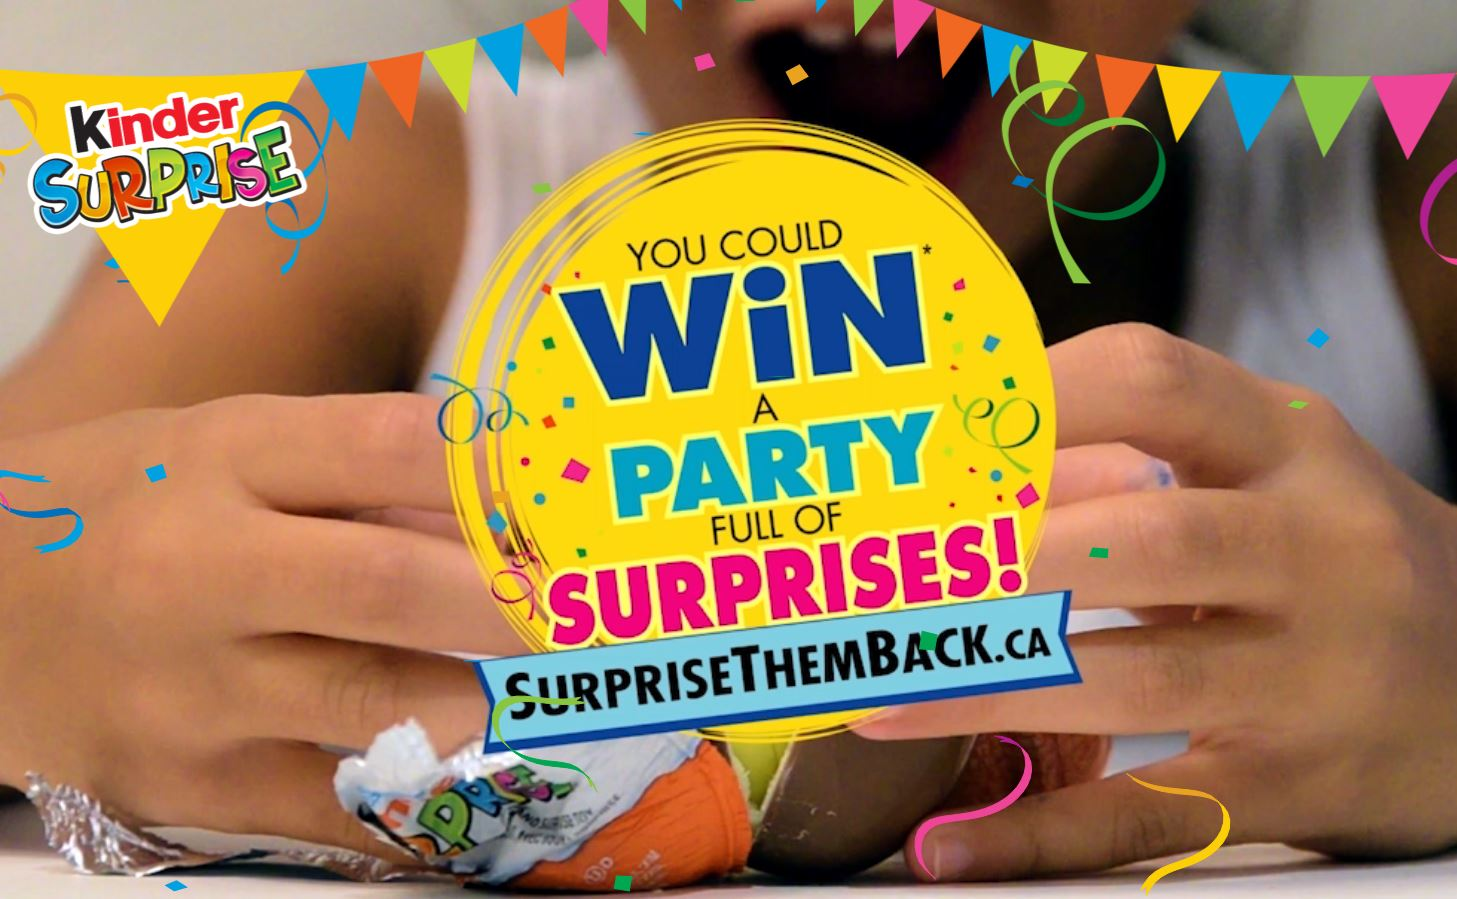 Kinderessen Party Kinder Surprise Them Back Contest Win Instant Prizes Or Ultimate